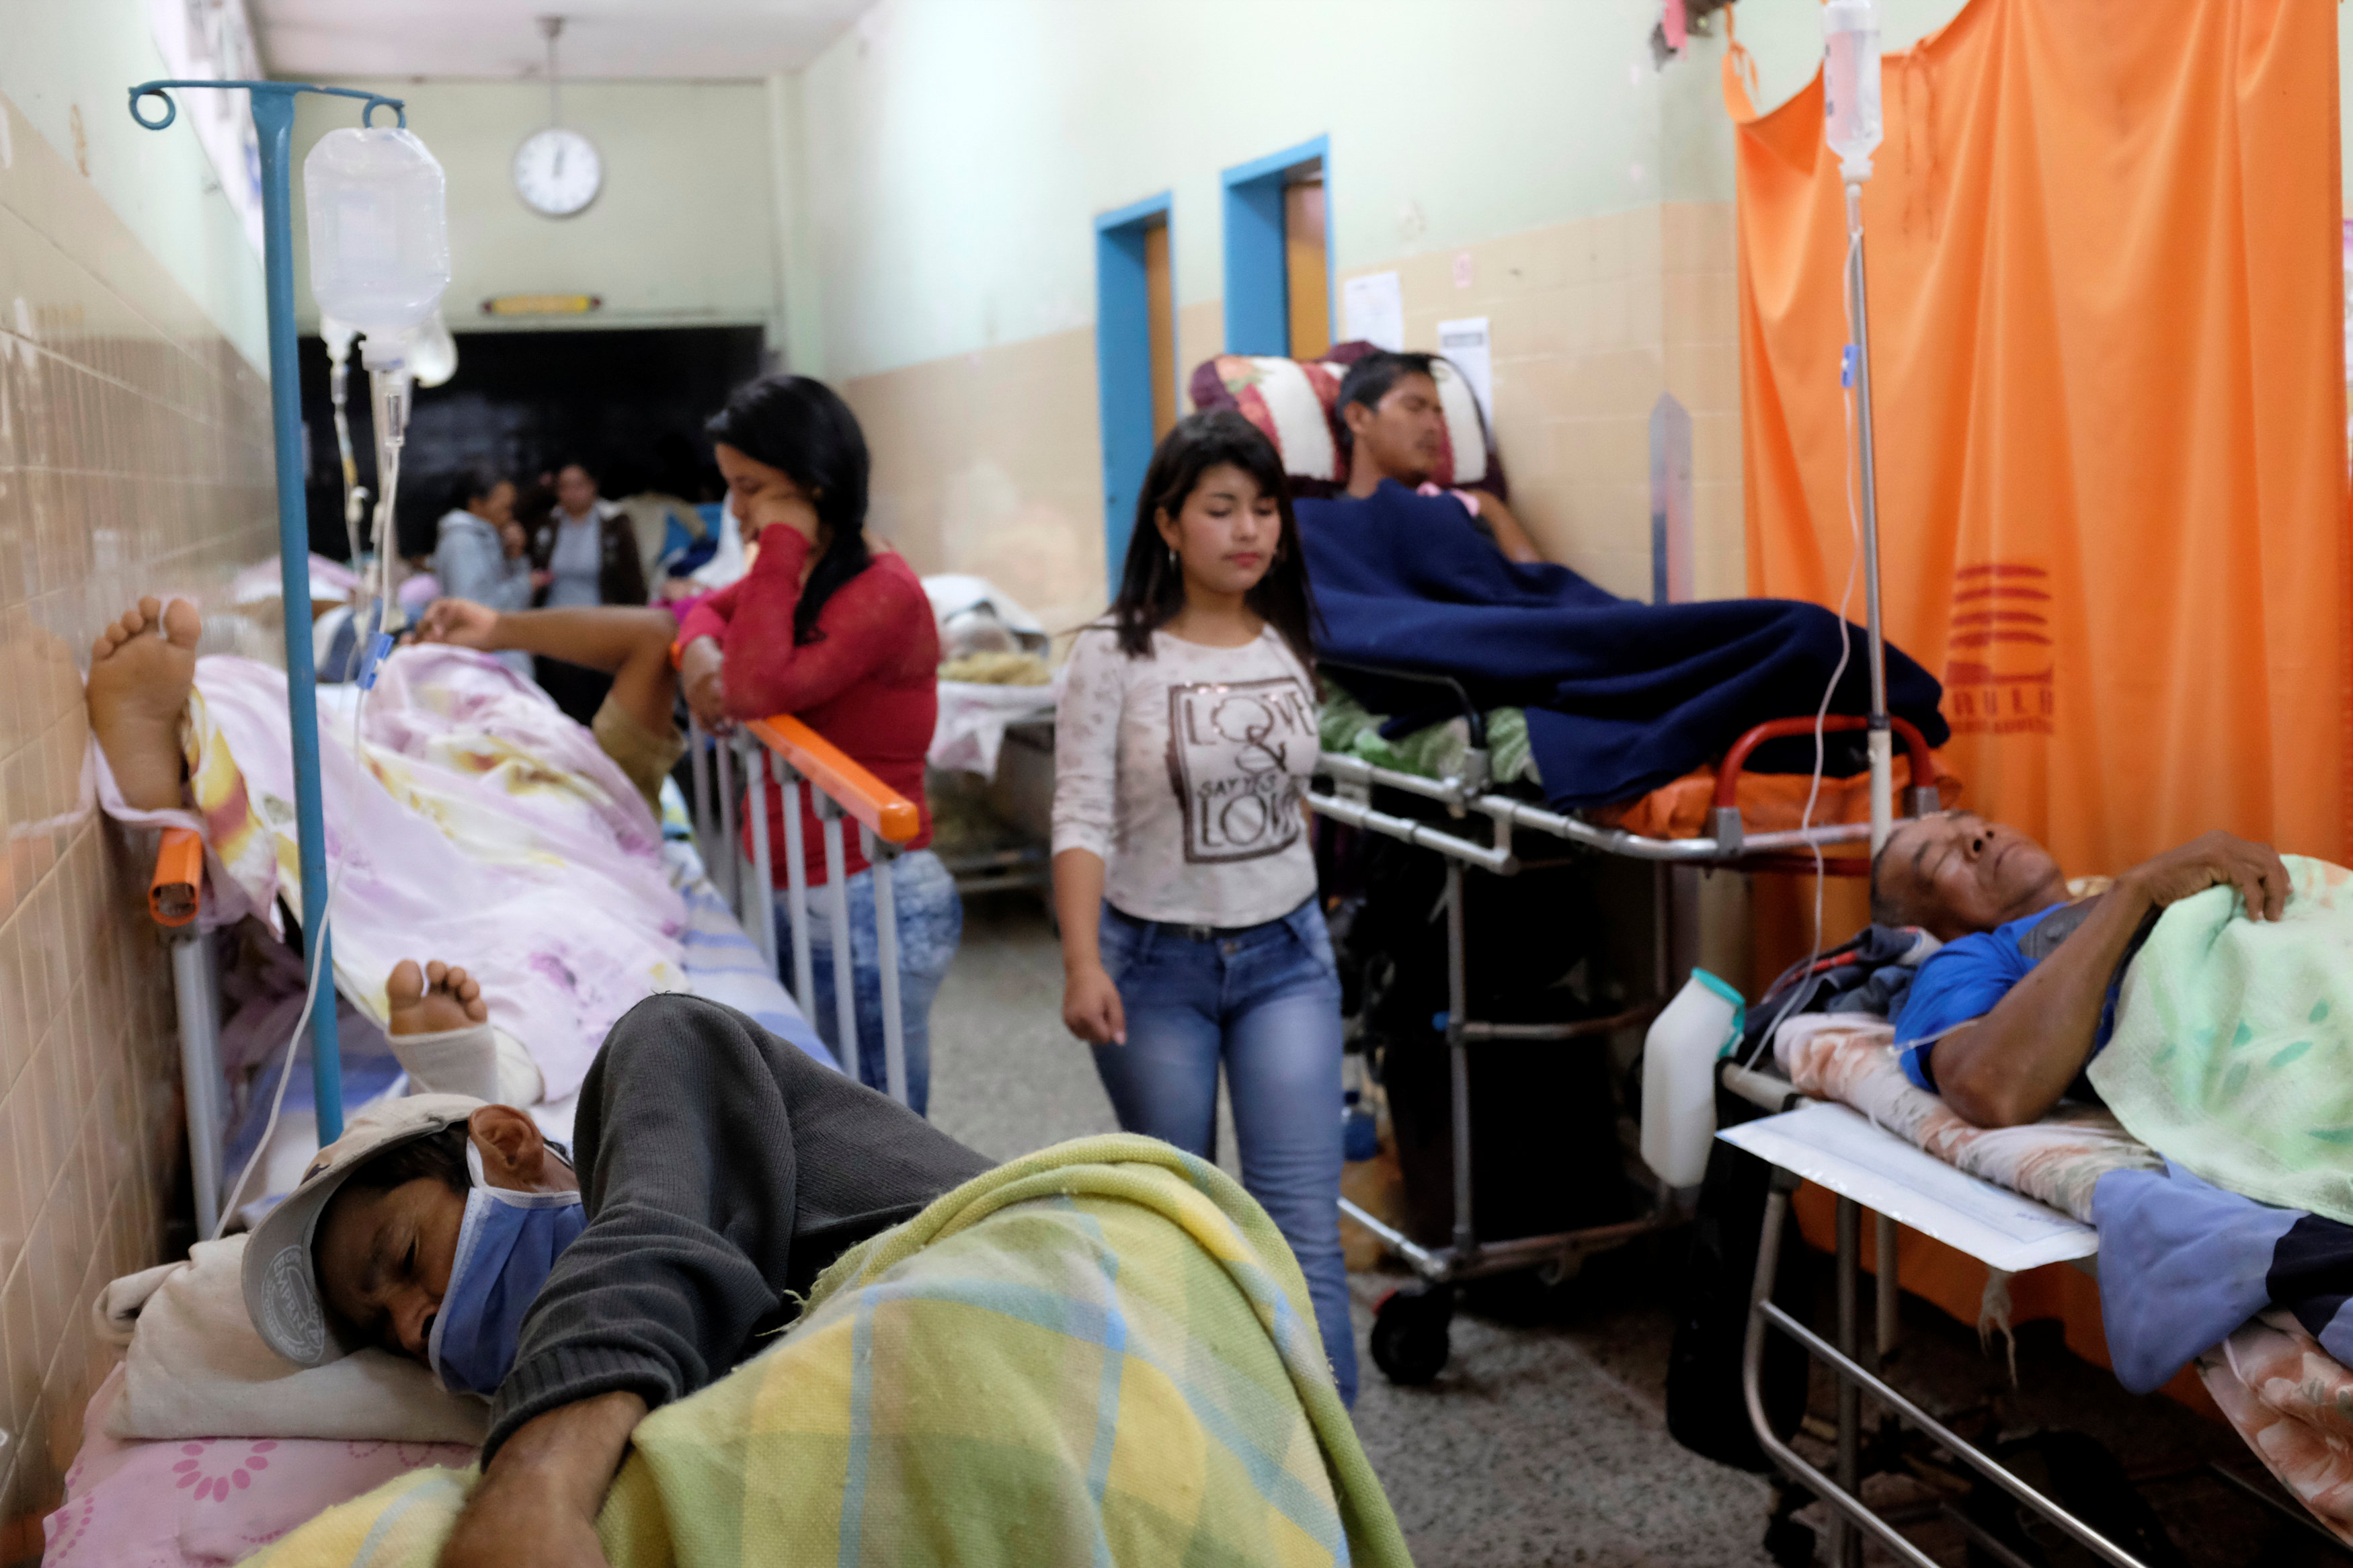 Patients lie in hospital beds in the hallway of Venezuelan hospital